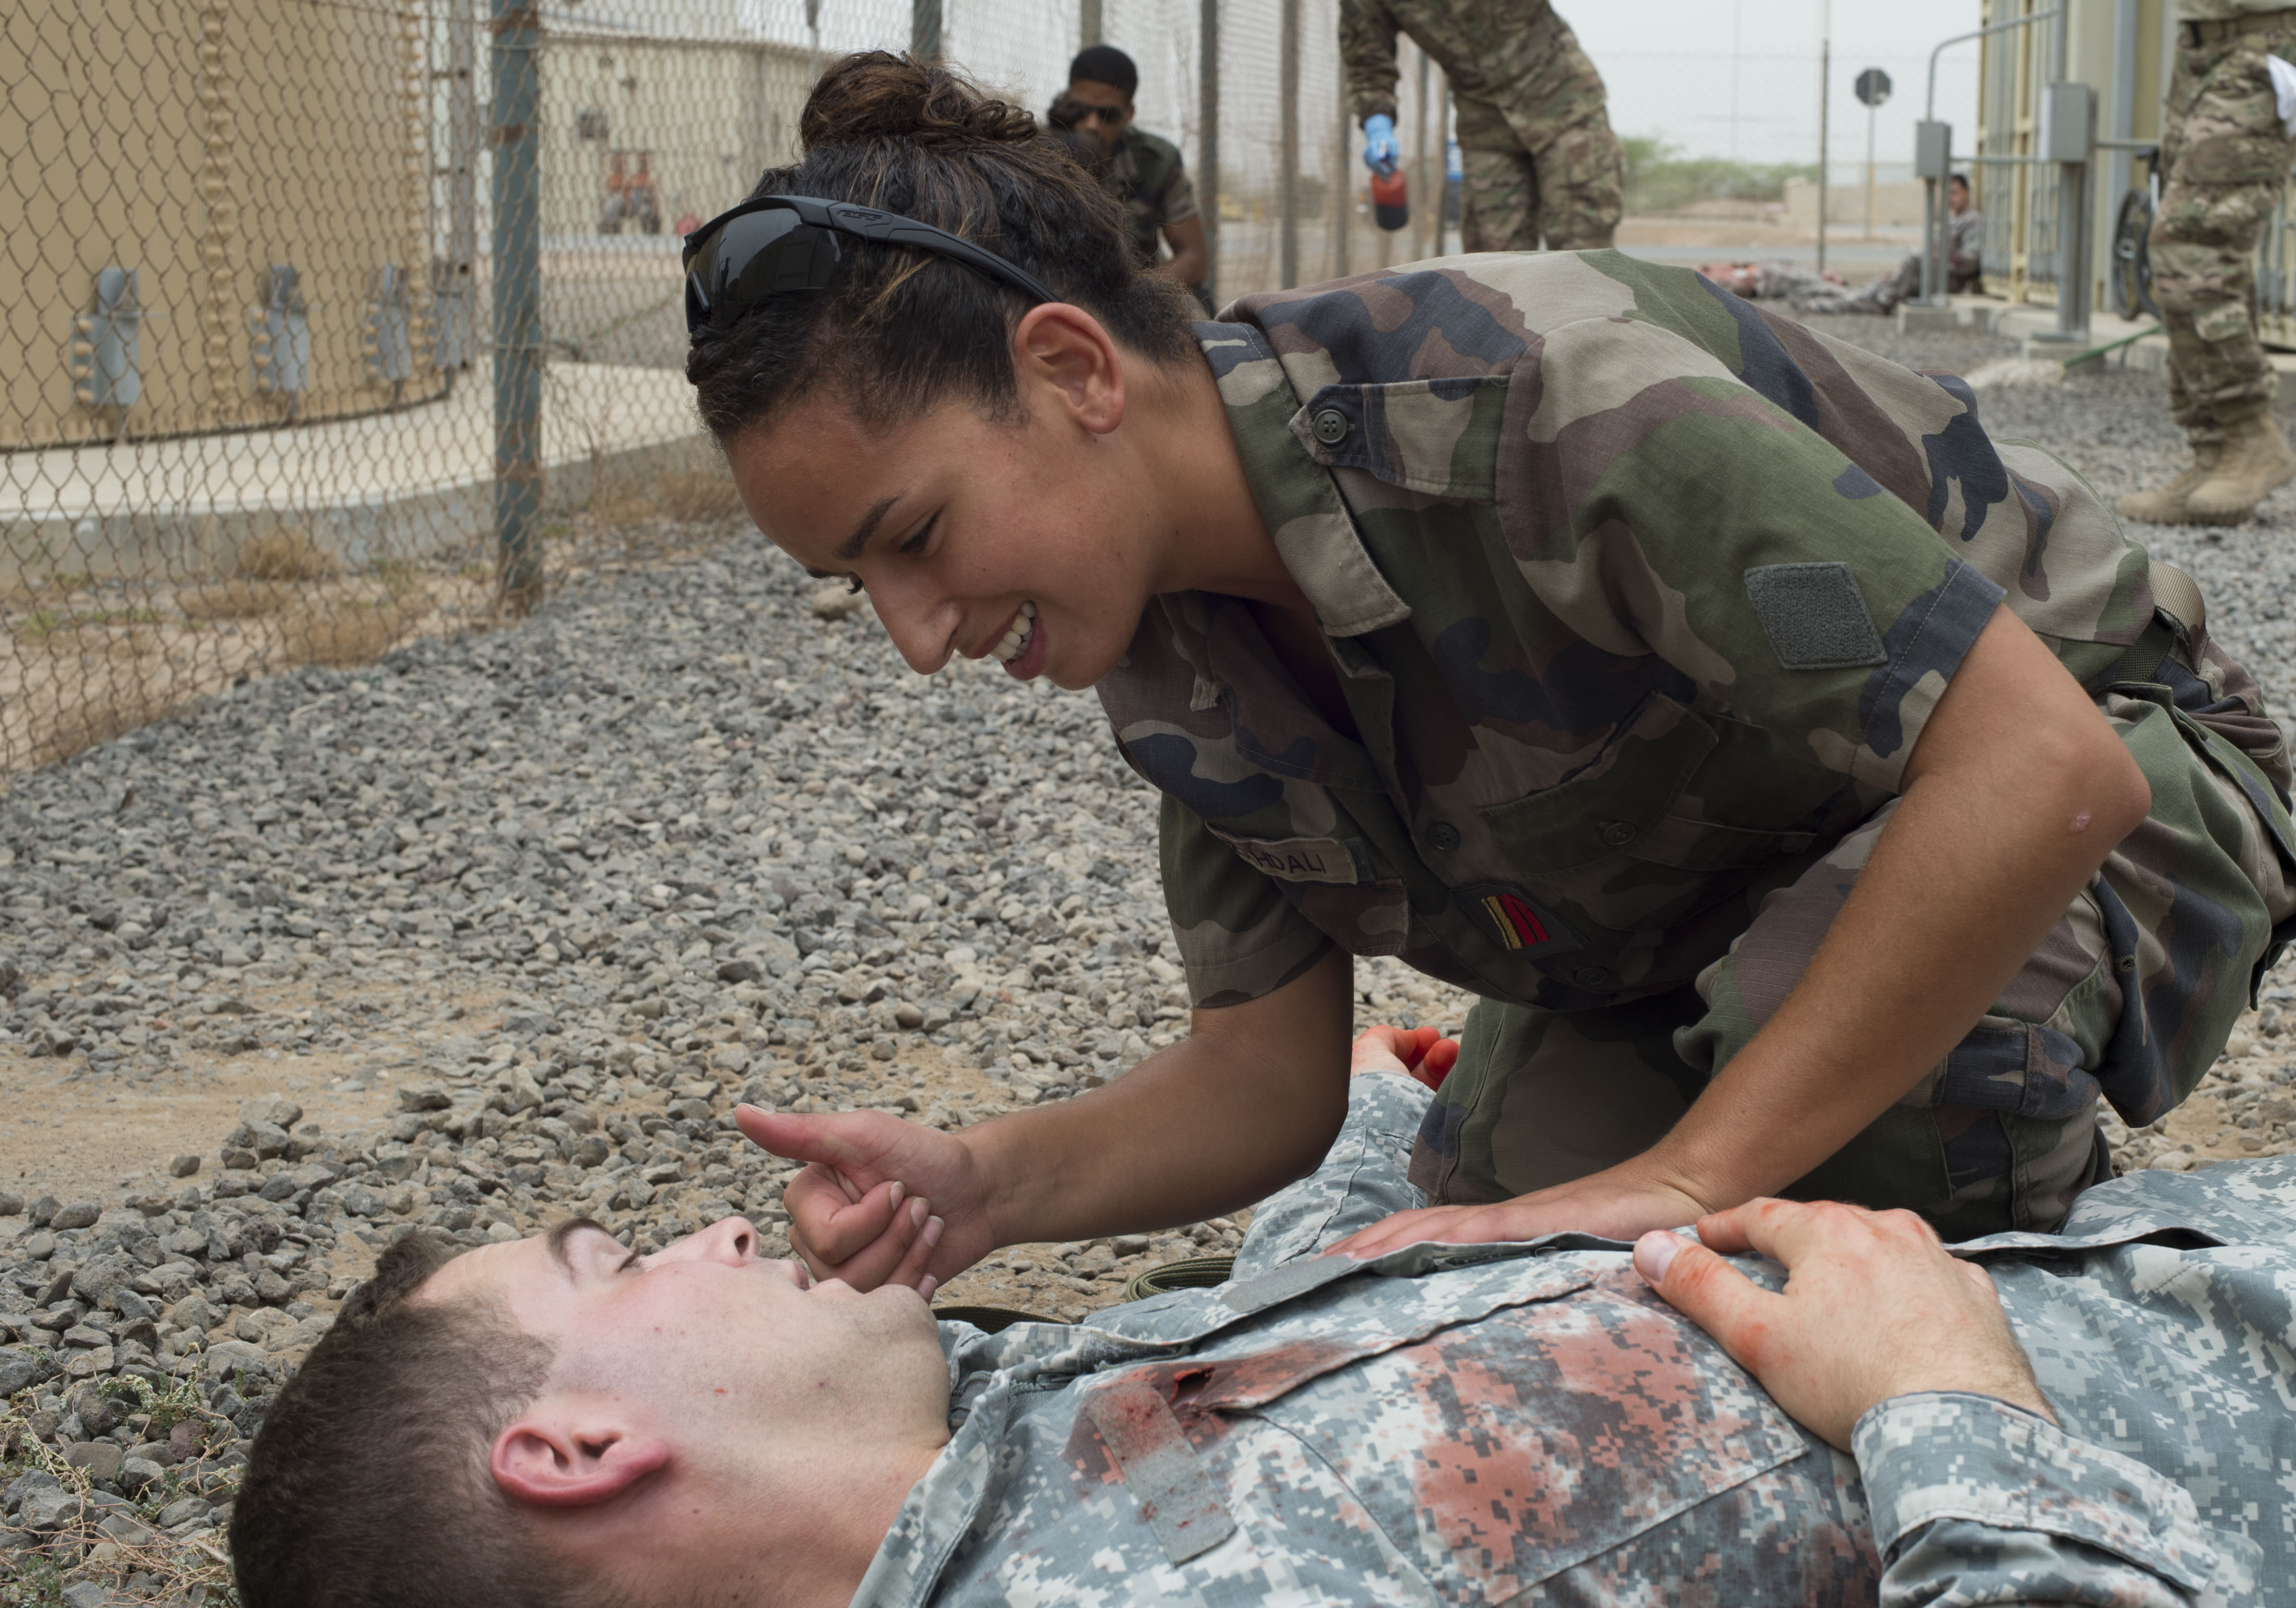 Caporal-chef Adjudant, a French military medical officer, uses hand gestures to communicate with a simulated casualty during a combat lifesaver course practical exam June 23, 2016, at Camp Lemonnier, Djibouti. The French participants brought their own medical supplies to show how they treat patients. (U.S. Air Force photo by Staff Sgt. Eric Summers Jr.)w